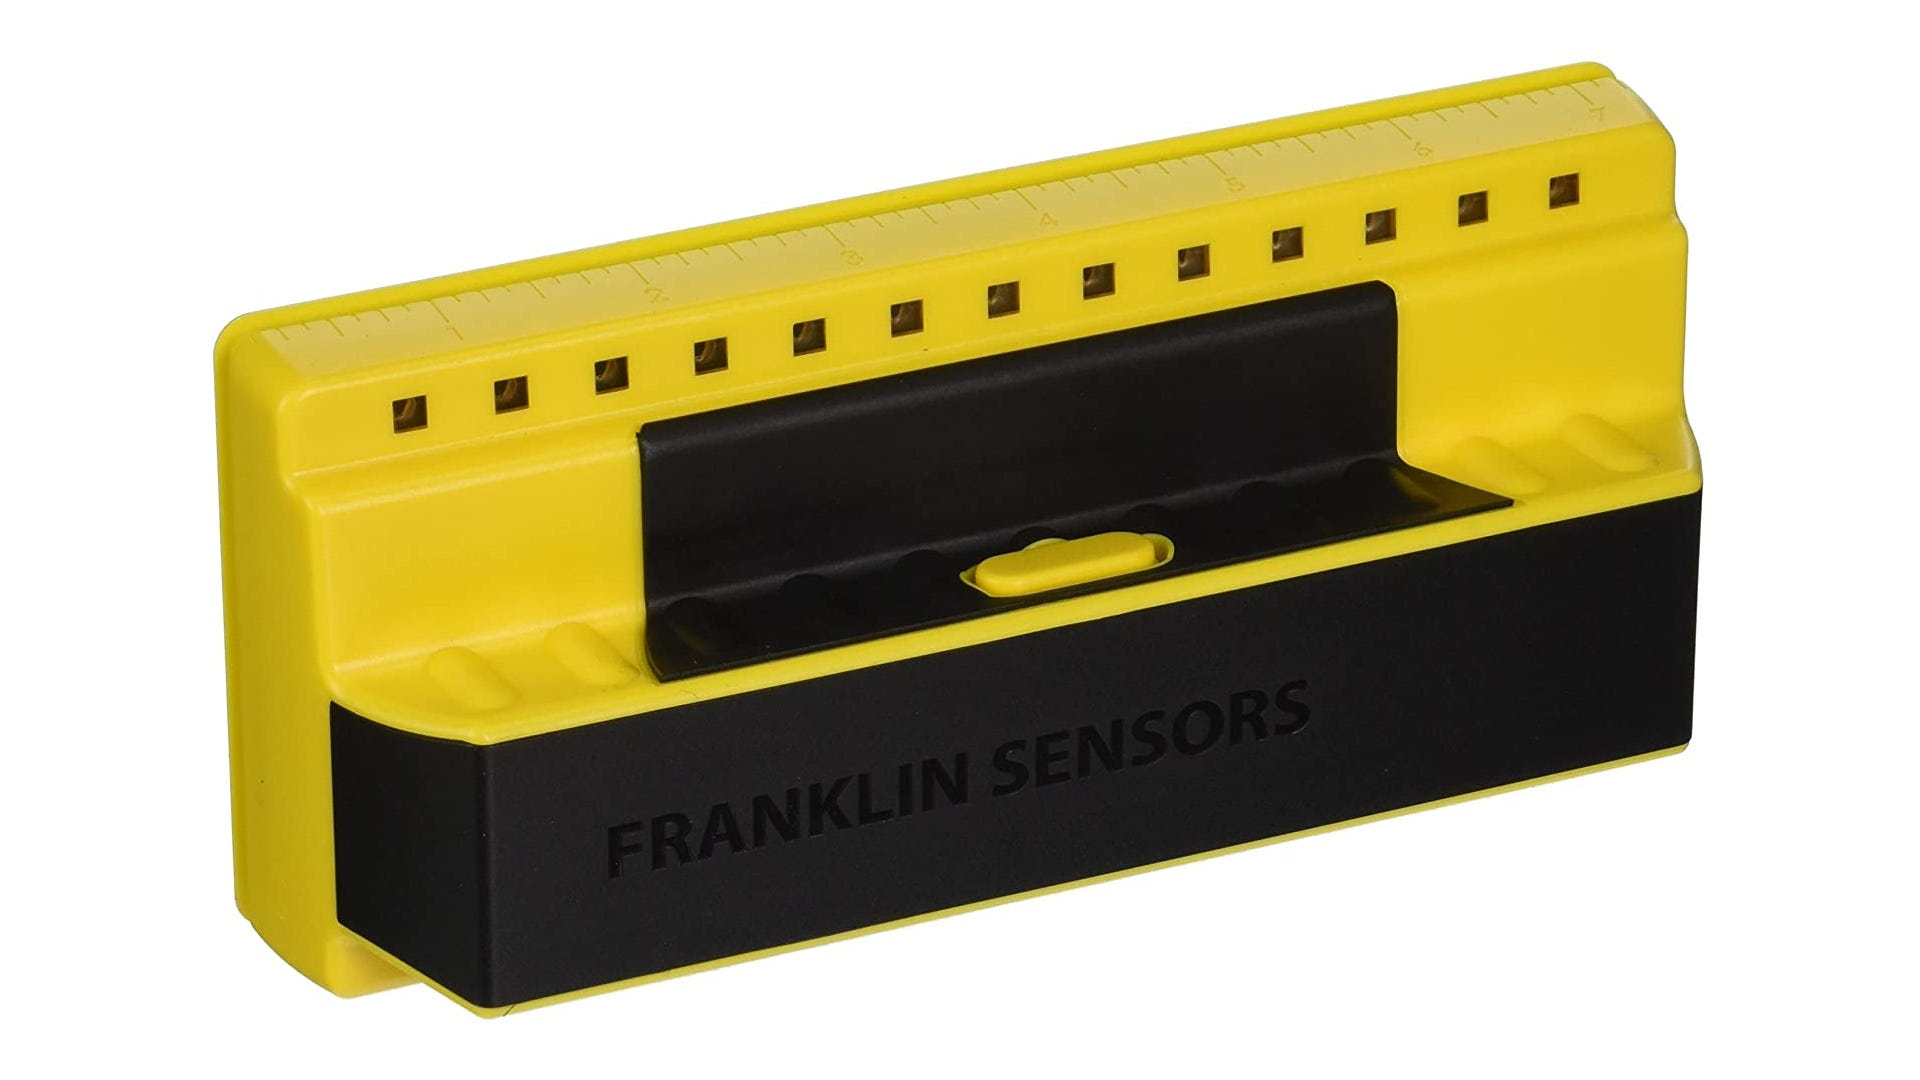 A black and yellow, 7-inch stud finder that features a scan-trigger just above its base, and 13 sensors located along the top of its frame.